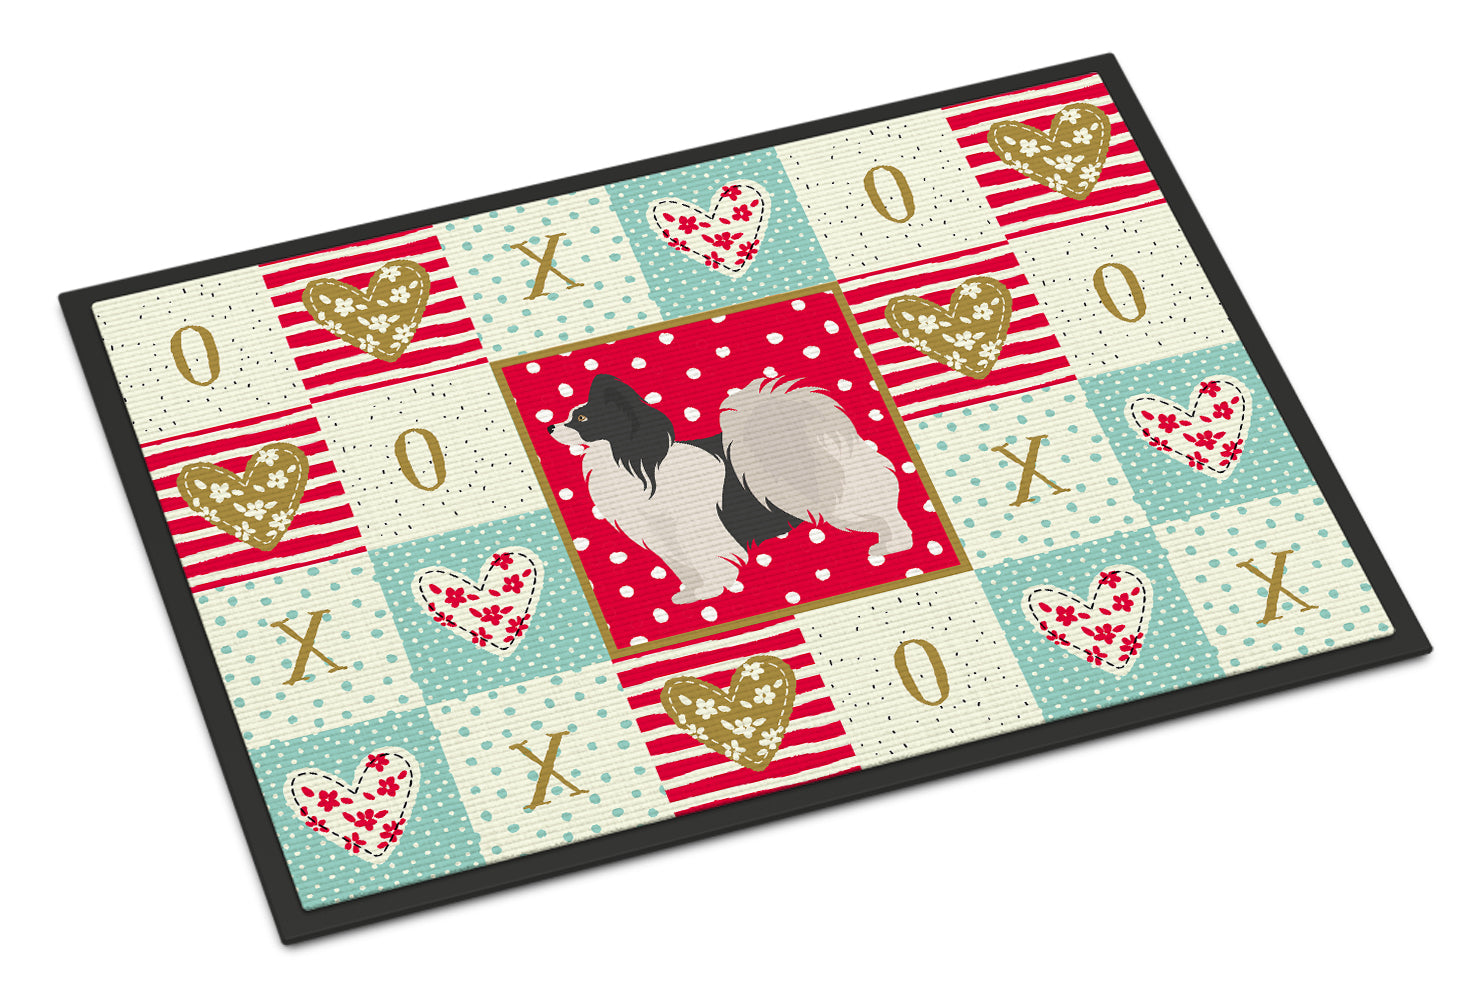 Papillon #2 Love Indoor or Outdoor Mat 18x27 CK5872MAT by Caroline's Treasures